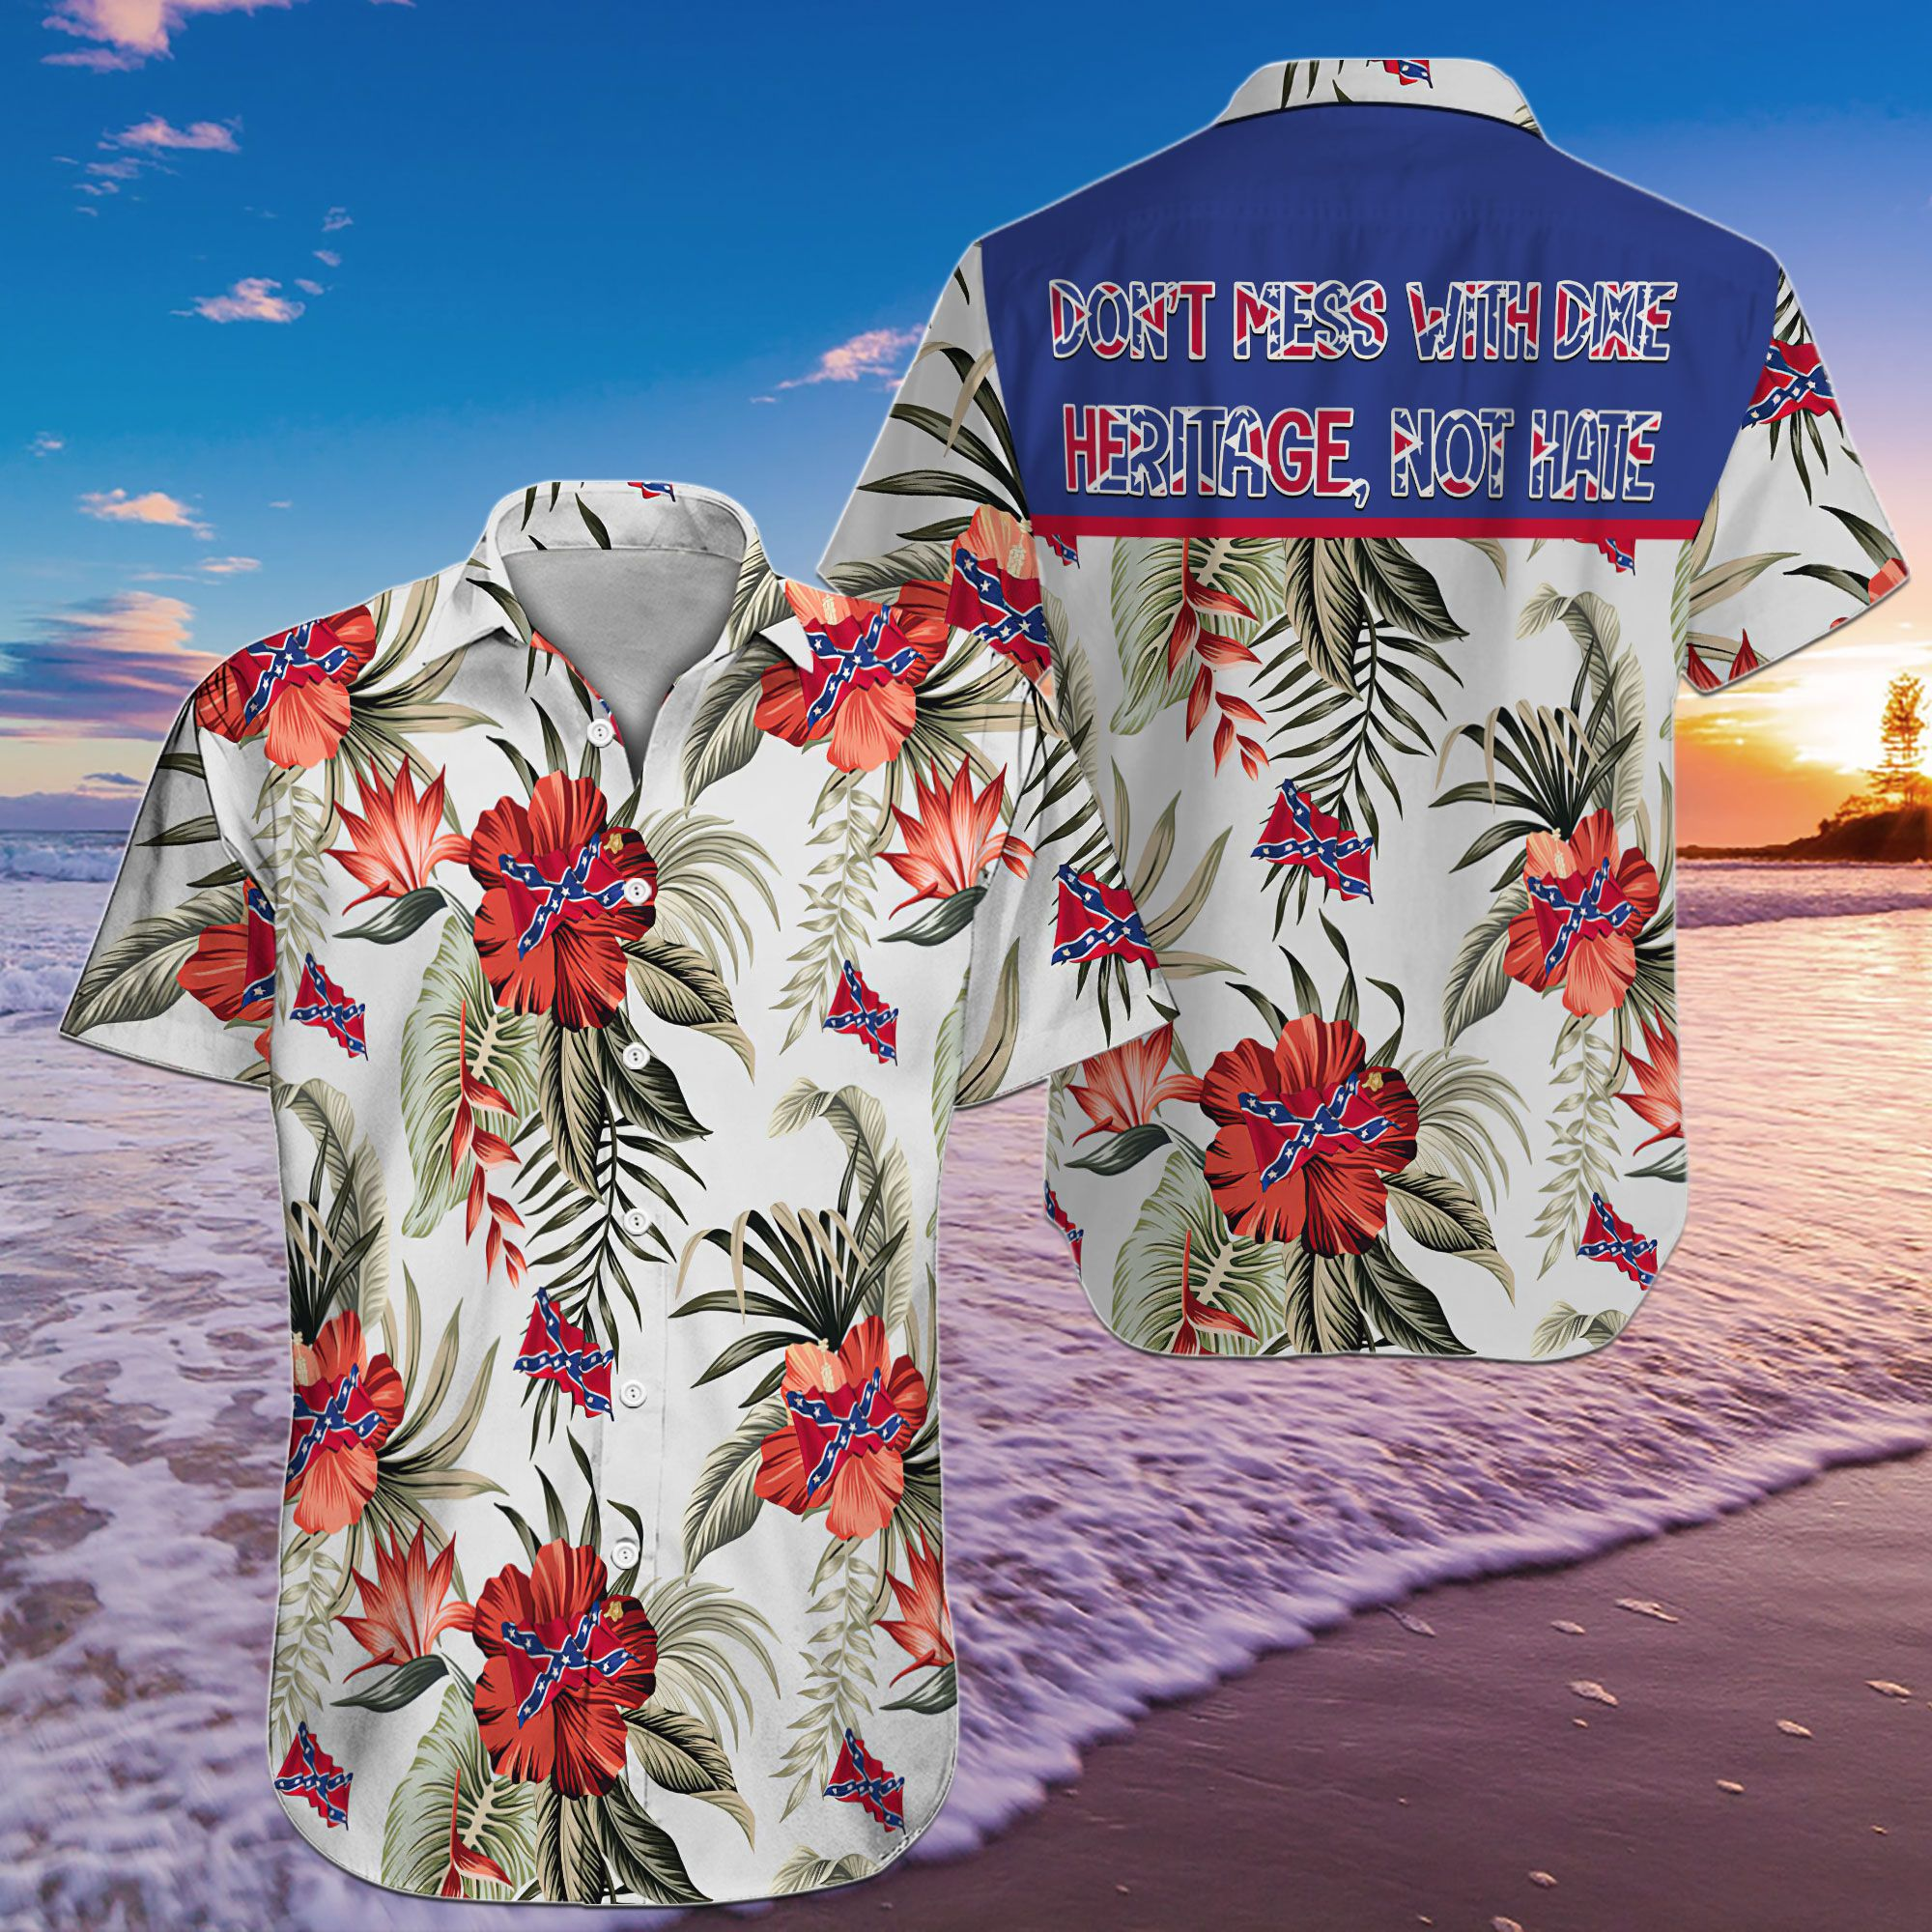 Do not mess with dixie heritage not hate Southern Rebel hawaiian shirt